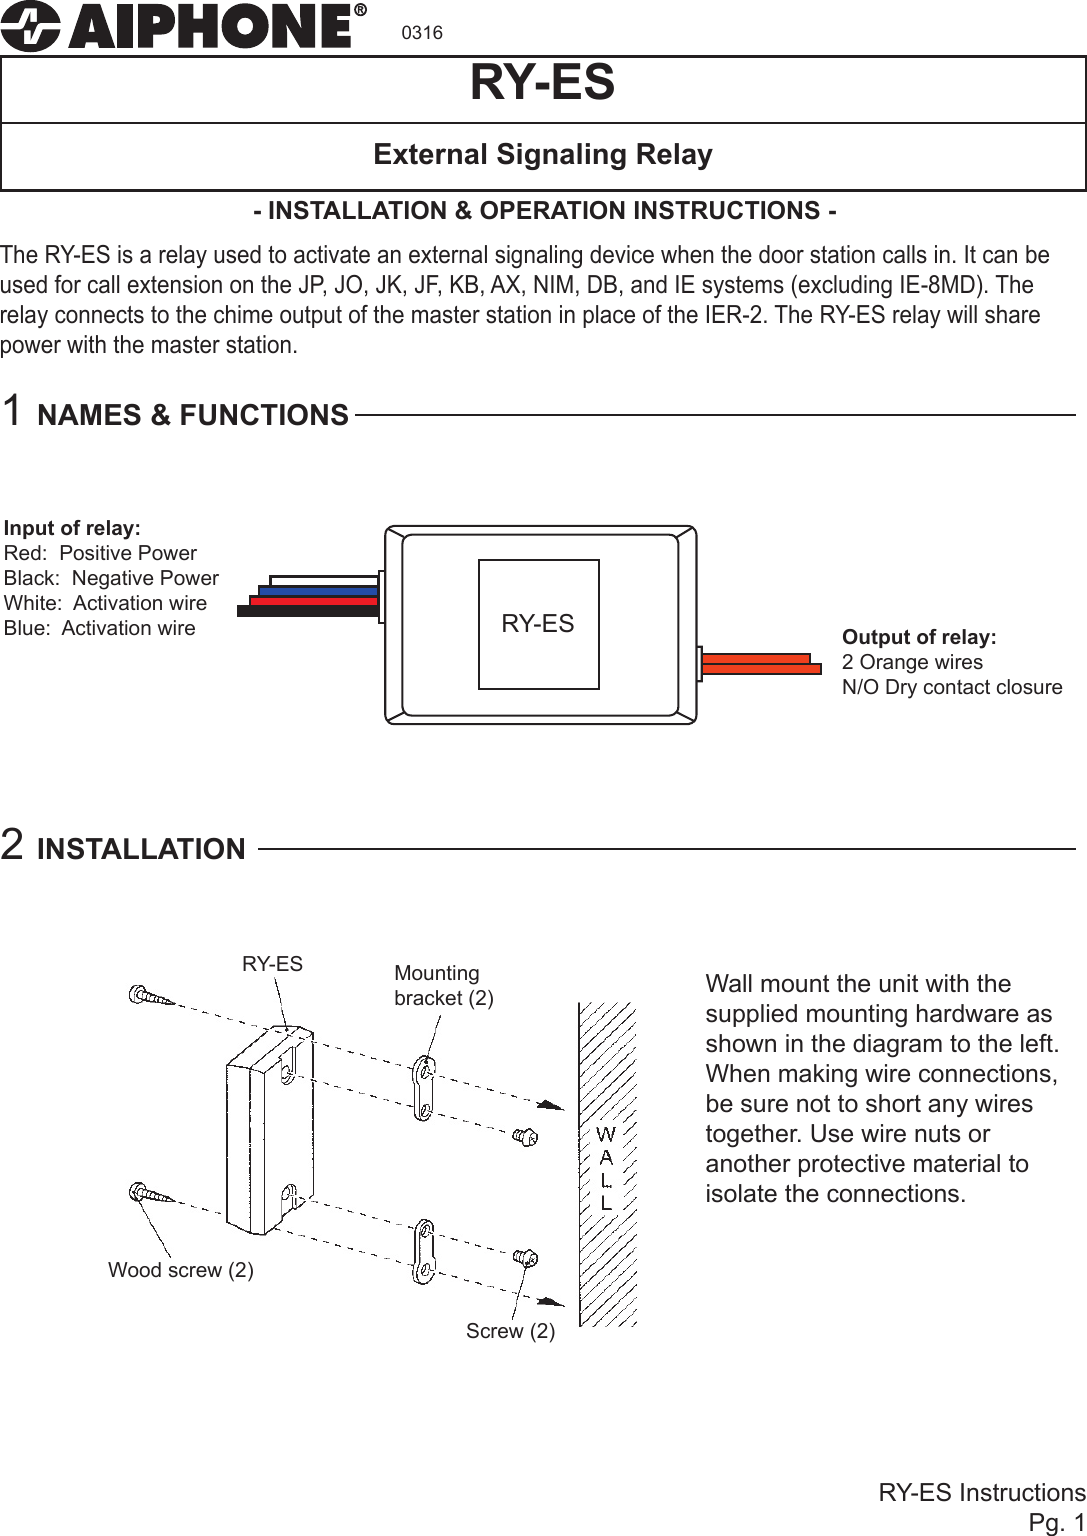 Aiphone Ry Es Instructions Wiring Diagram